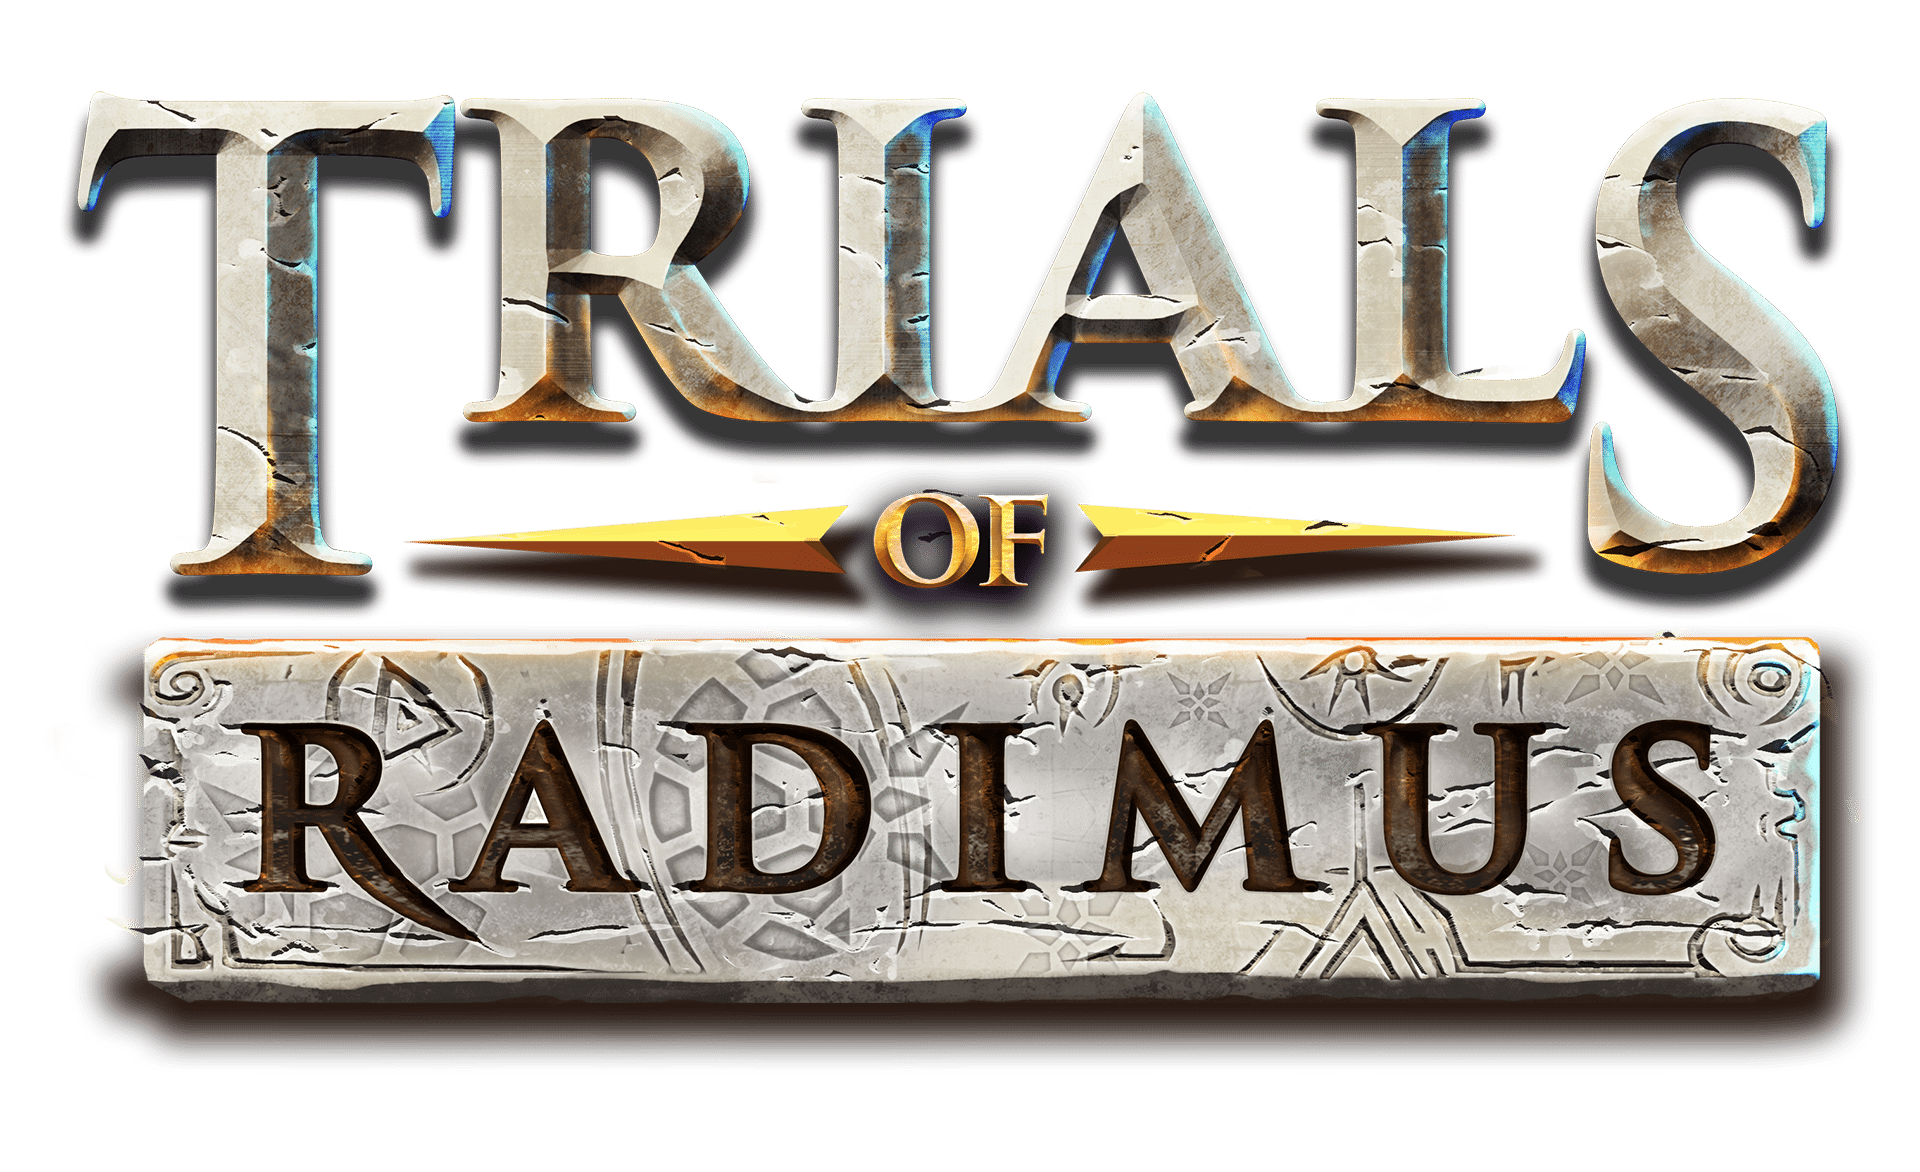 Chronicle: Runescape Legends Single Player Campaign Trials of Radimus Announced